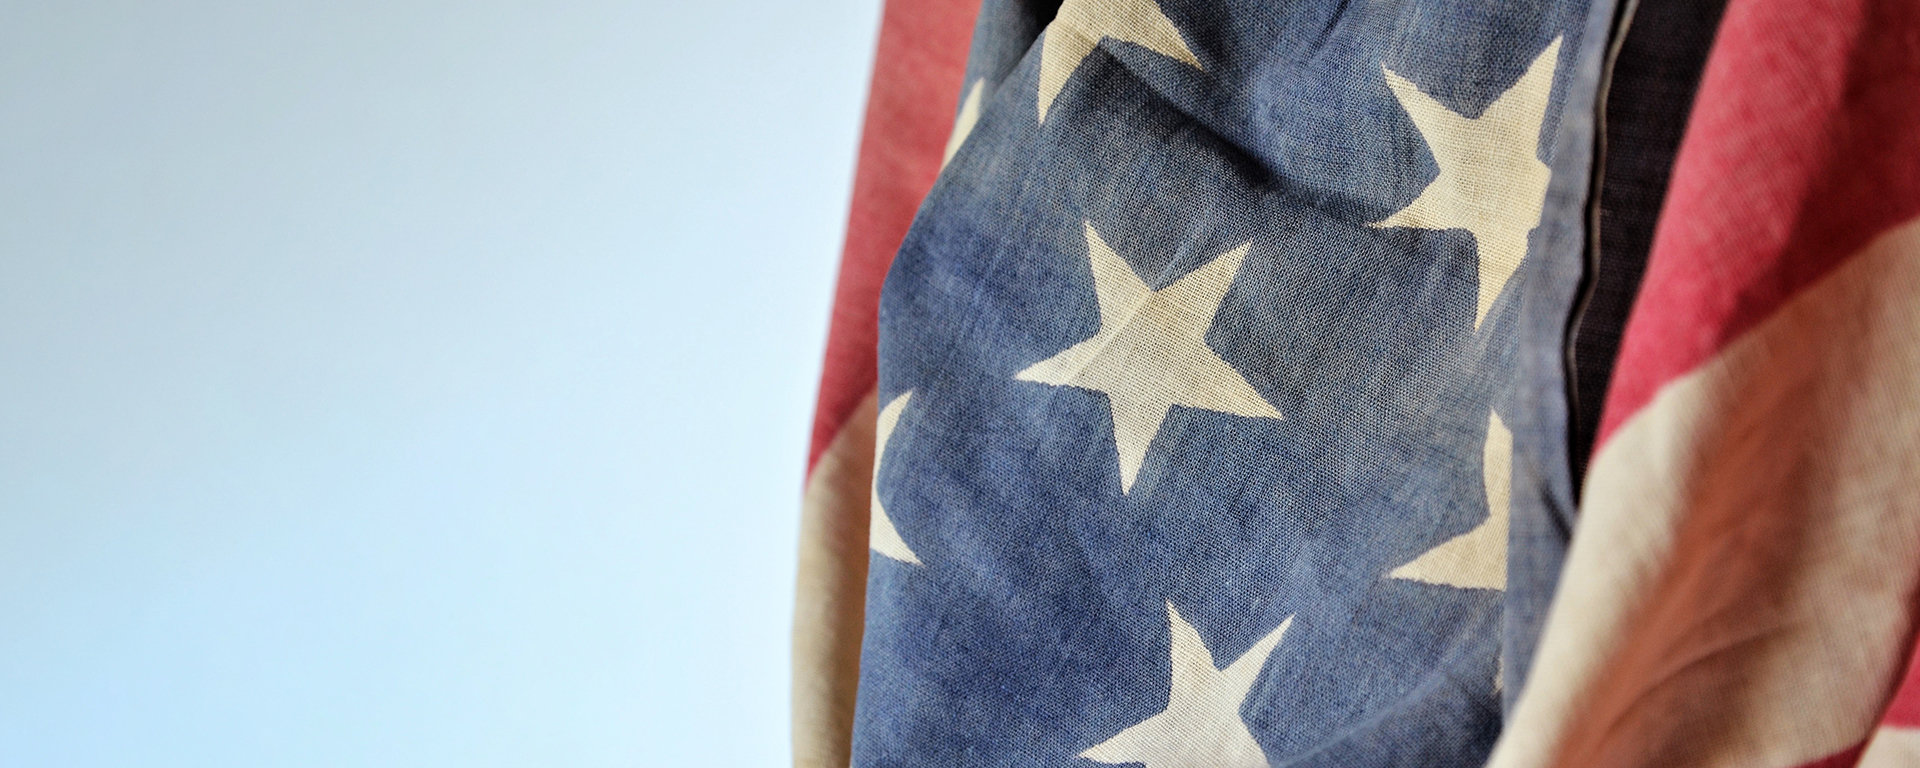 An image of the American flag